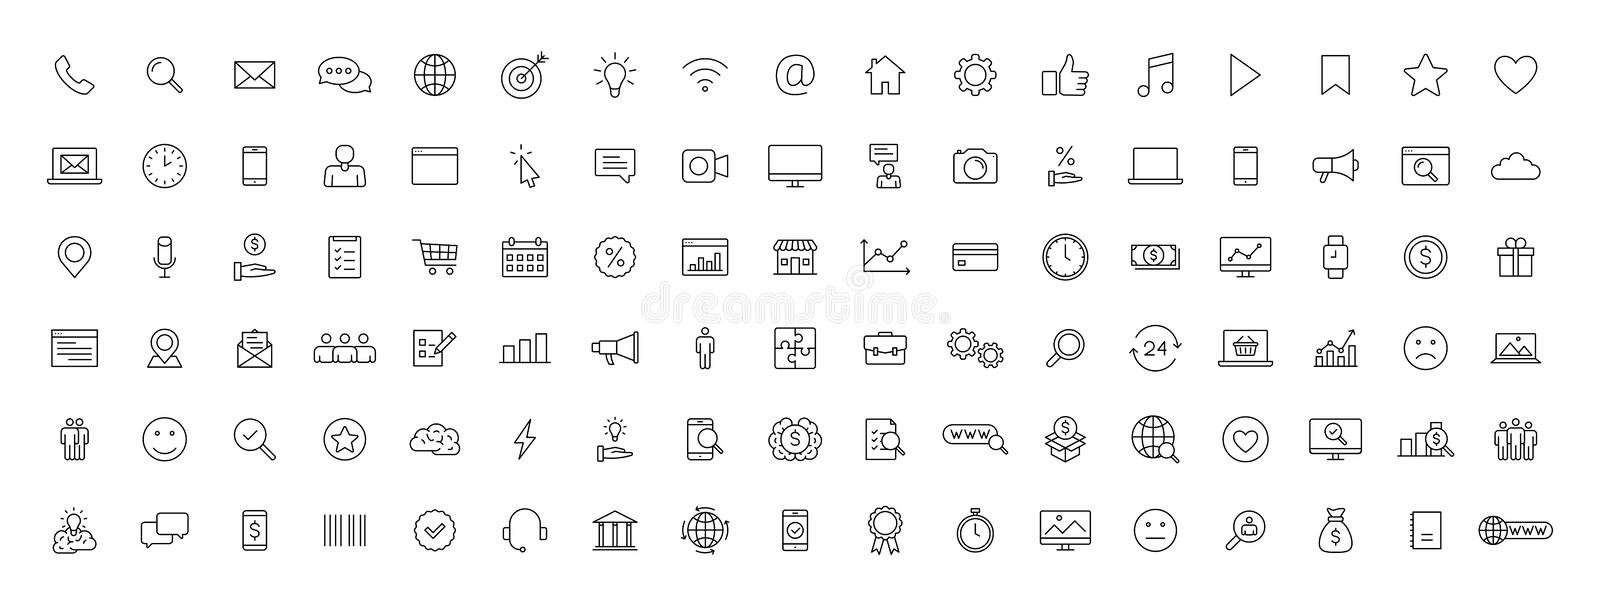 Big set of 100 Business and Finance web icons in line style. Money, bank, contact, office, payment, strategy, accounting, stock illustration